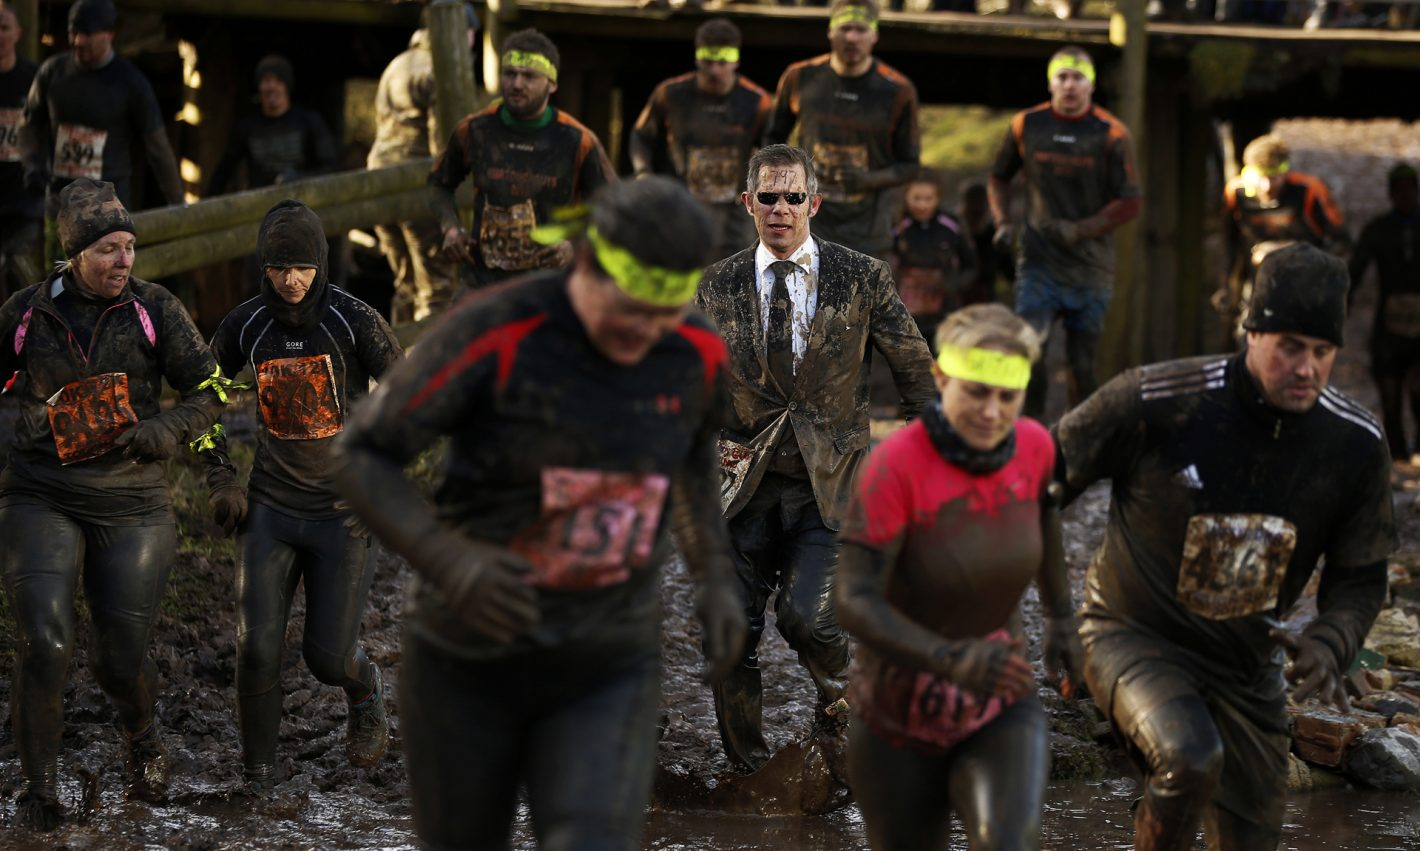 Competitors run through mud during the Tough Guy event in Perton, central England February 1, 2015. The annual event to raise cash for charity challenges thousands of international competitors in a cross country run followed by an assault course consisting of obstacles including water, fire and tunnels. REUTERS/Phil Noble (BRITAIN - Tags: SPORT SOCCER TPX IMAGES OF THE DAY) - RTR4NSE6